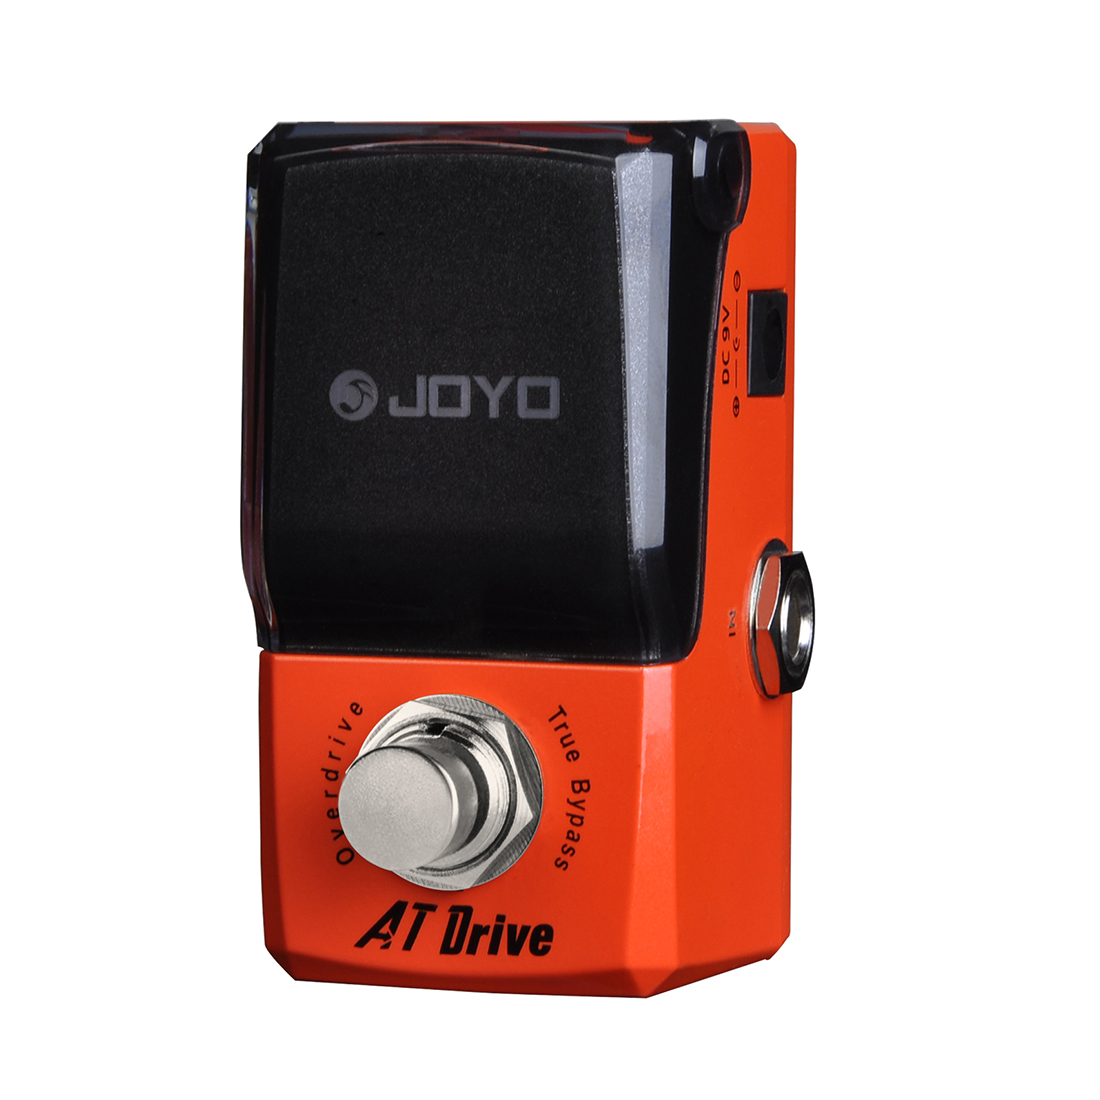 JOYO JF-305 JF-311 JF-314 JF-319 JF-332 AT Husky Drive Effects Pedal Effect Processor for Guitar Blue Rain MOONBASE Green Legend allenjoy thin vinyl cloth photography backdrop blue background for studio photo pure color photocall wedding backdrop mh 076